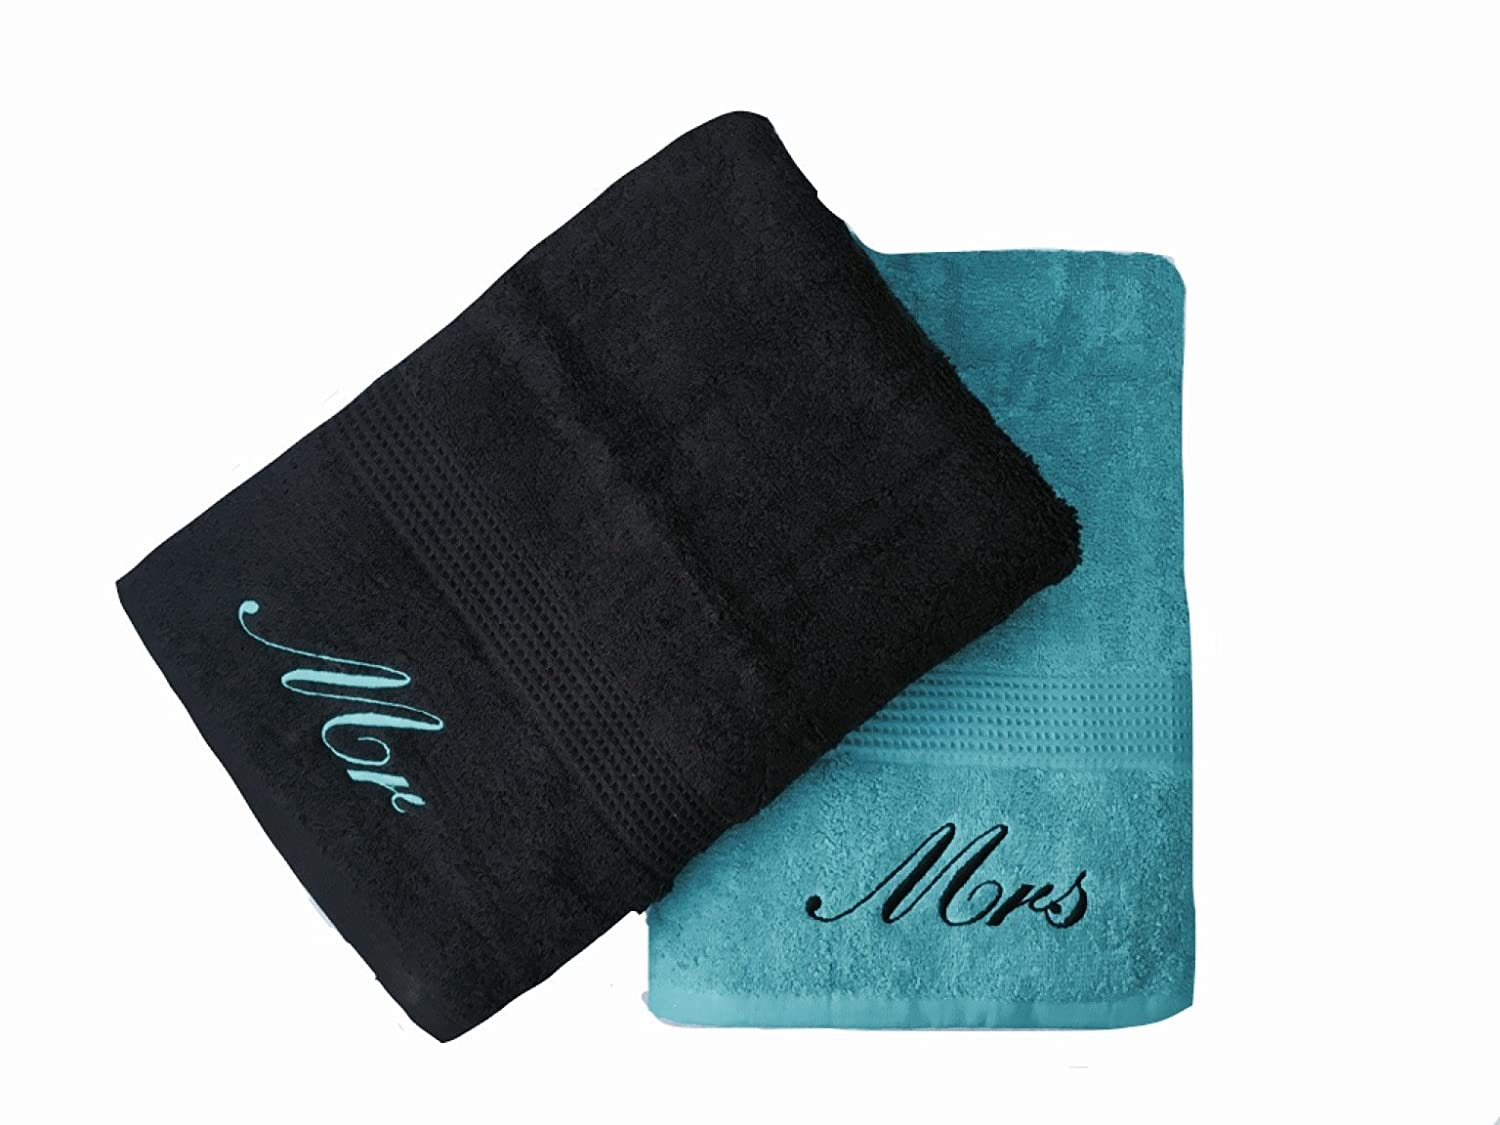 Niche Embroidery Embroidered Mr & Mrs Teal and Black Bath Towels Pair